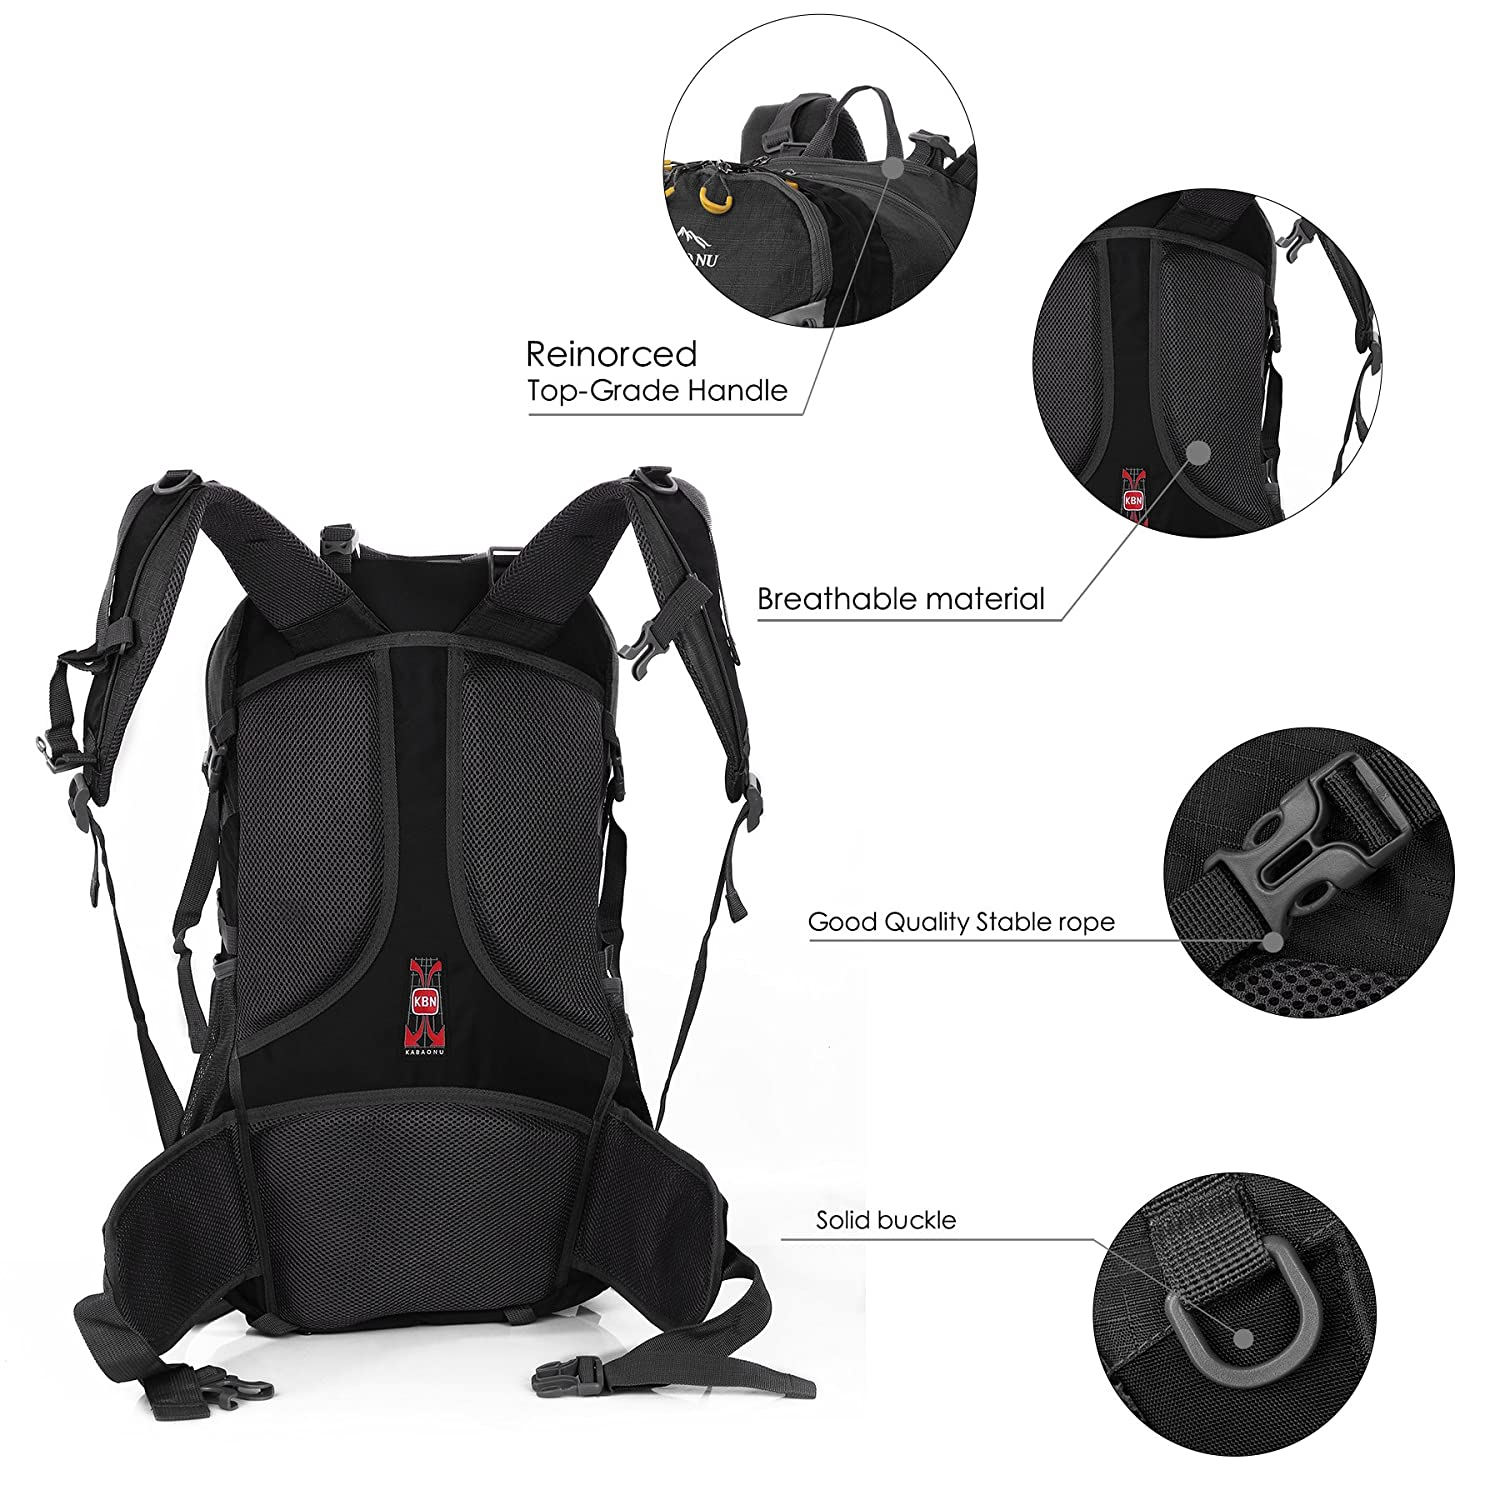 Amazon.com : Mooedcoe 65L Waterproof Hiking Daypack Outdoor Travel Camping Backpack for Men (Black) : Sports & Outdoors